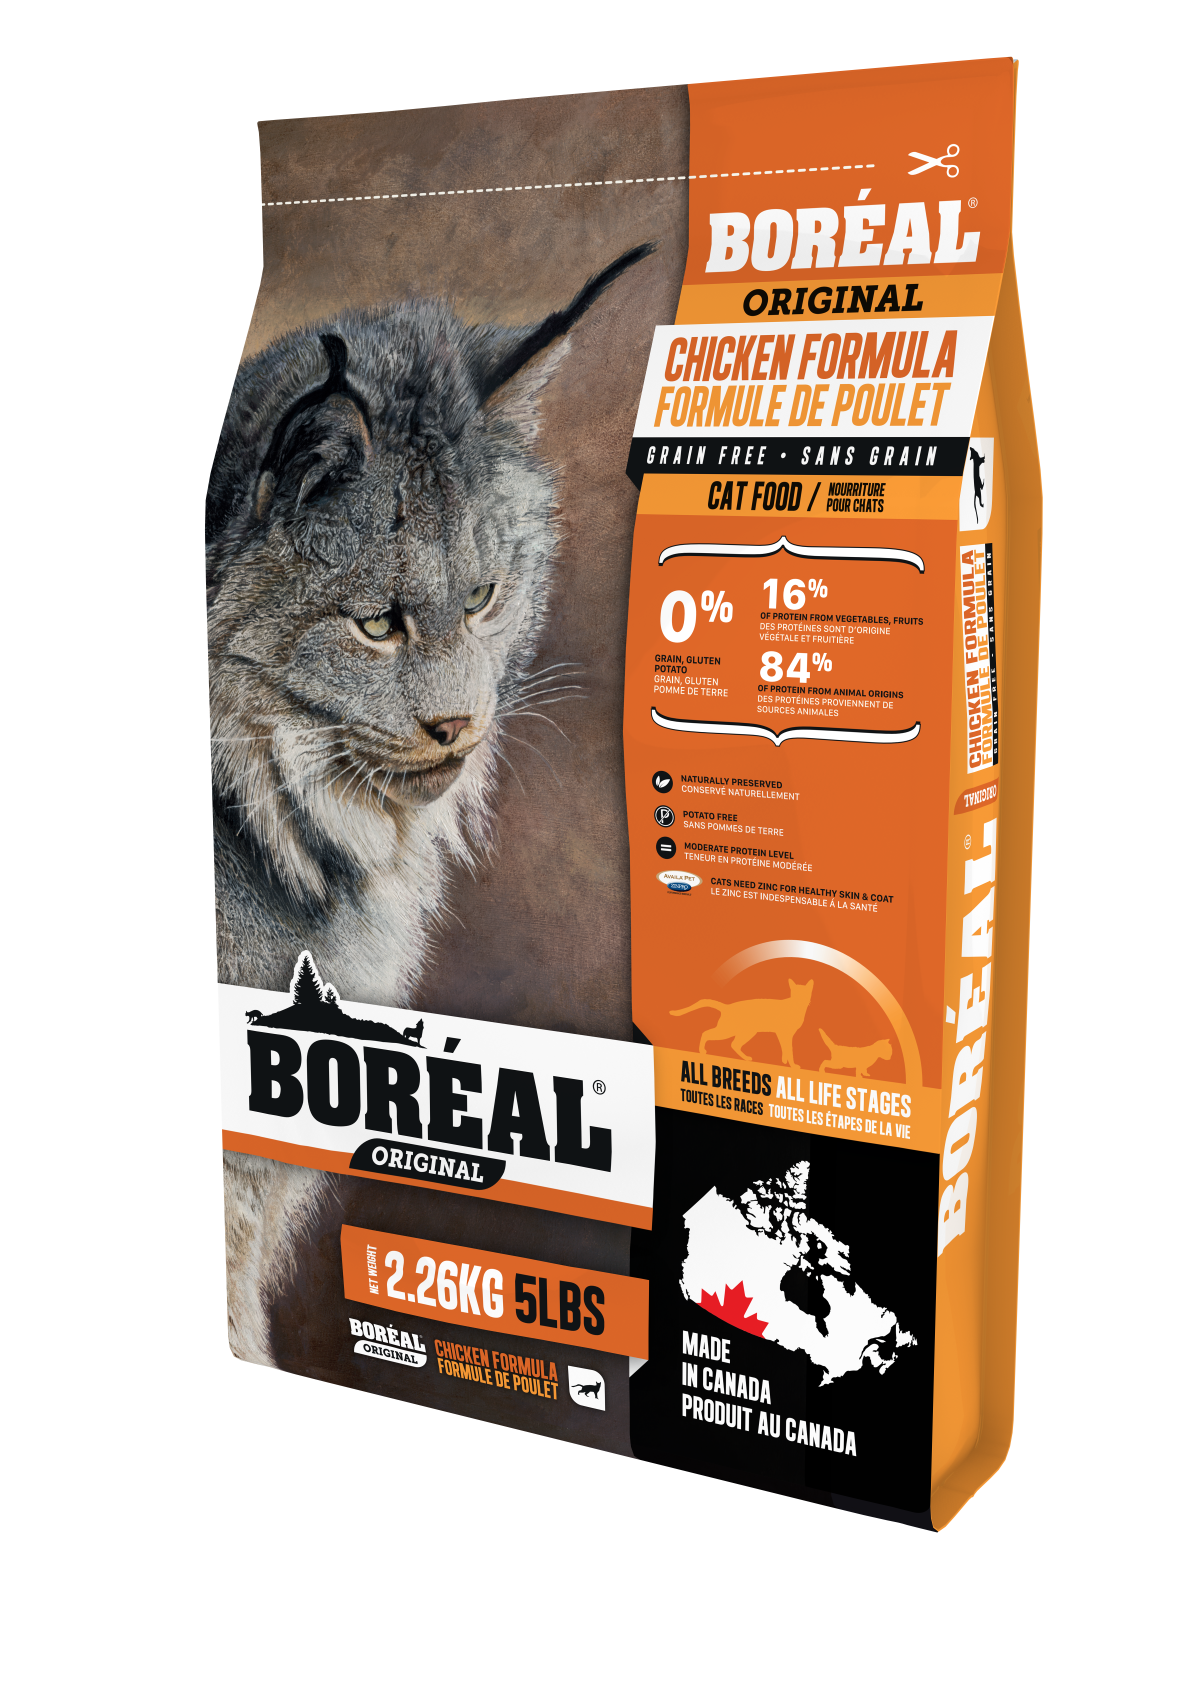 Boreal Grain-Free Original Chicken Grain Free Dry Cat Food, 2.26kg bag